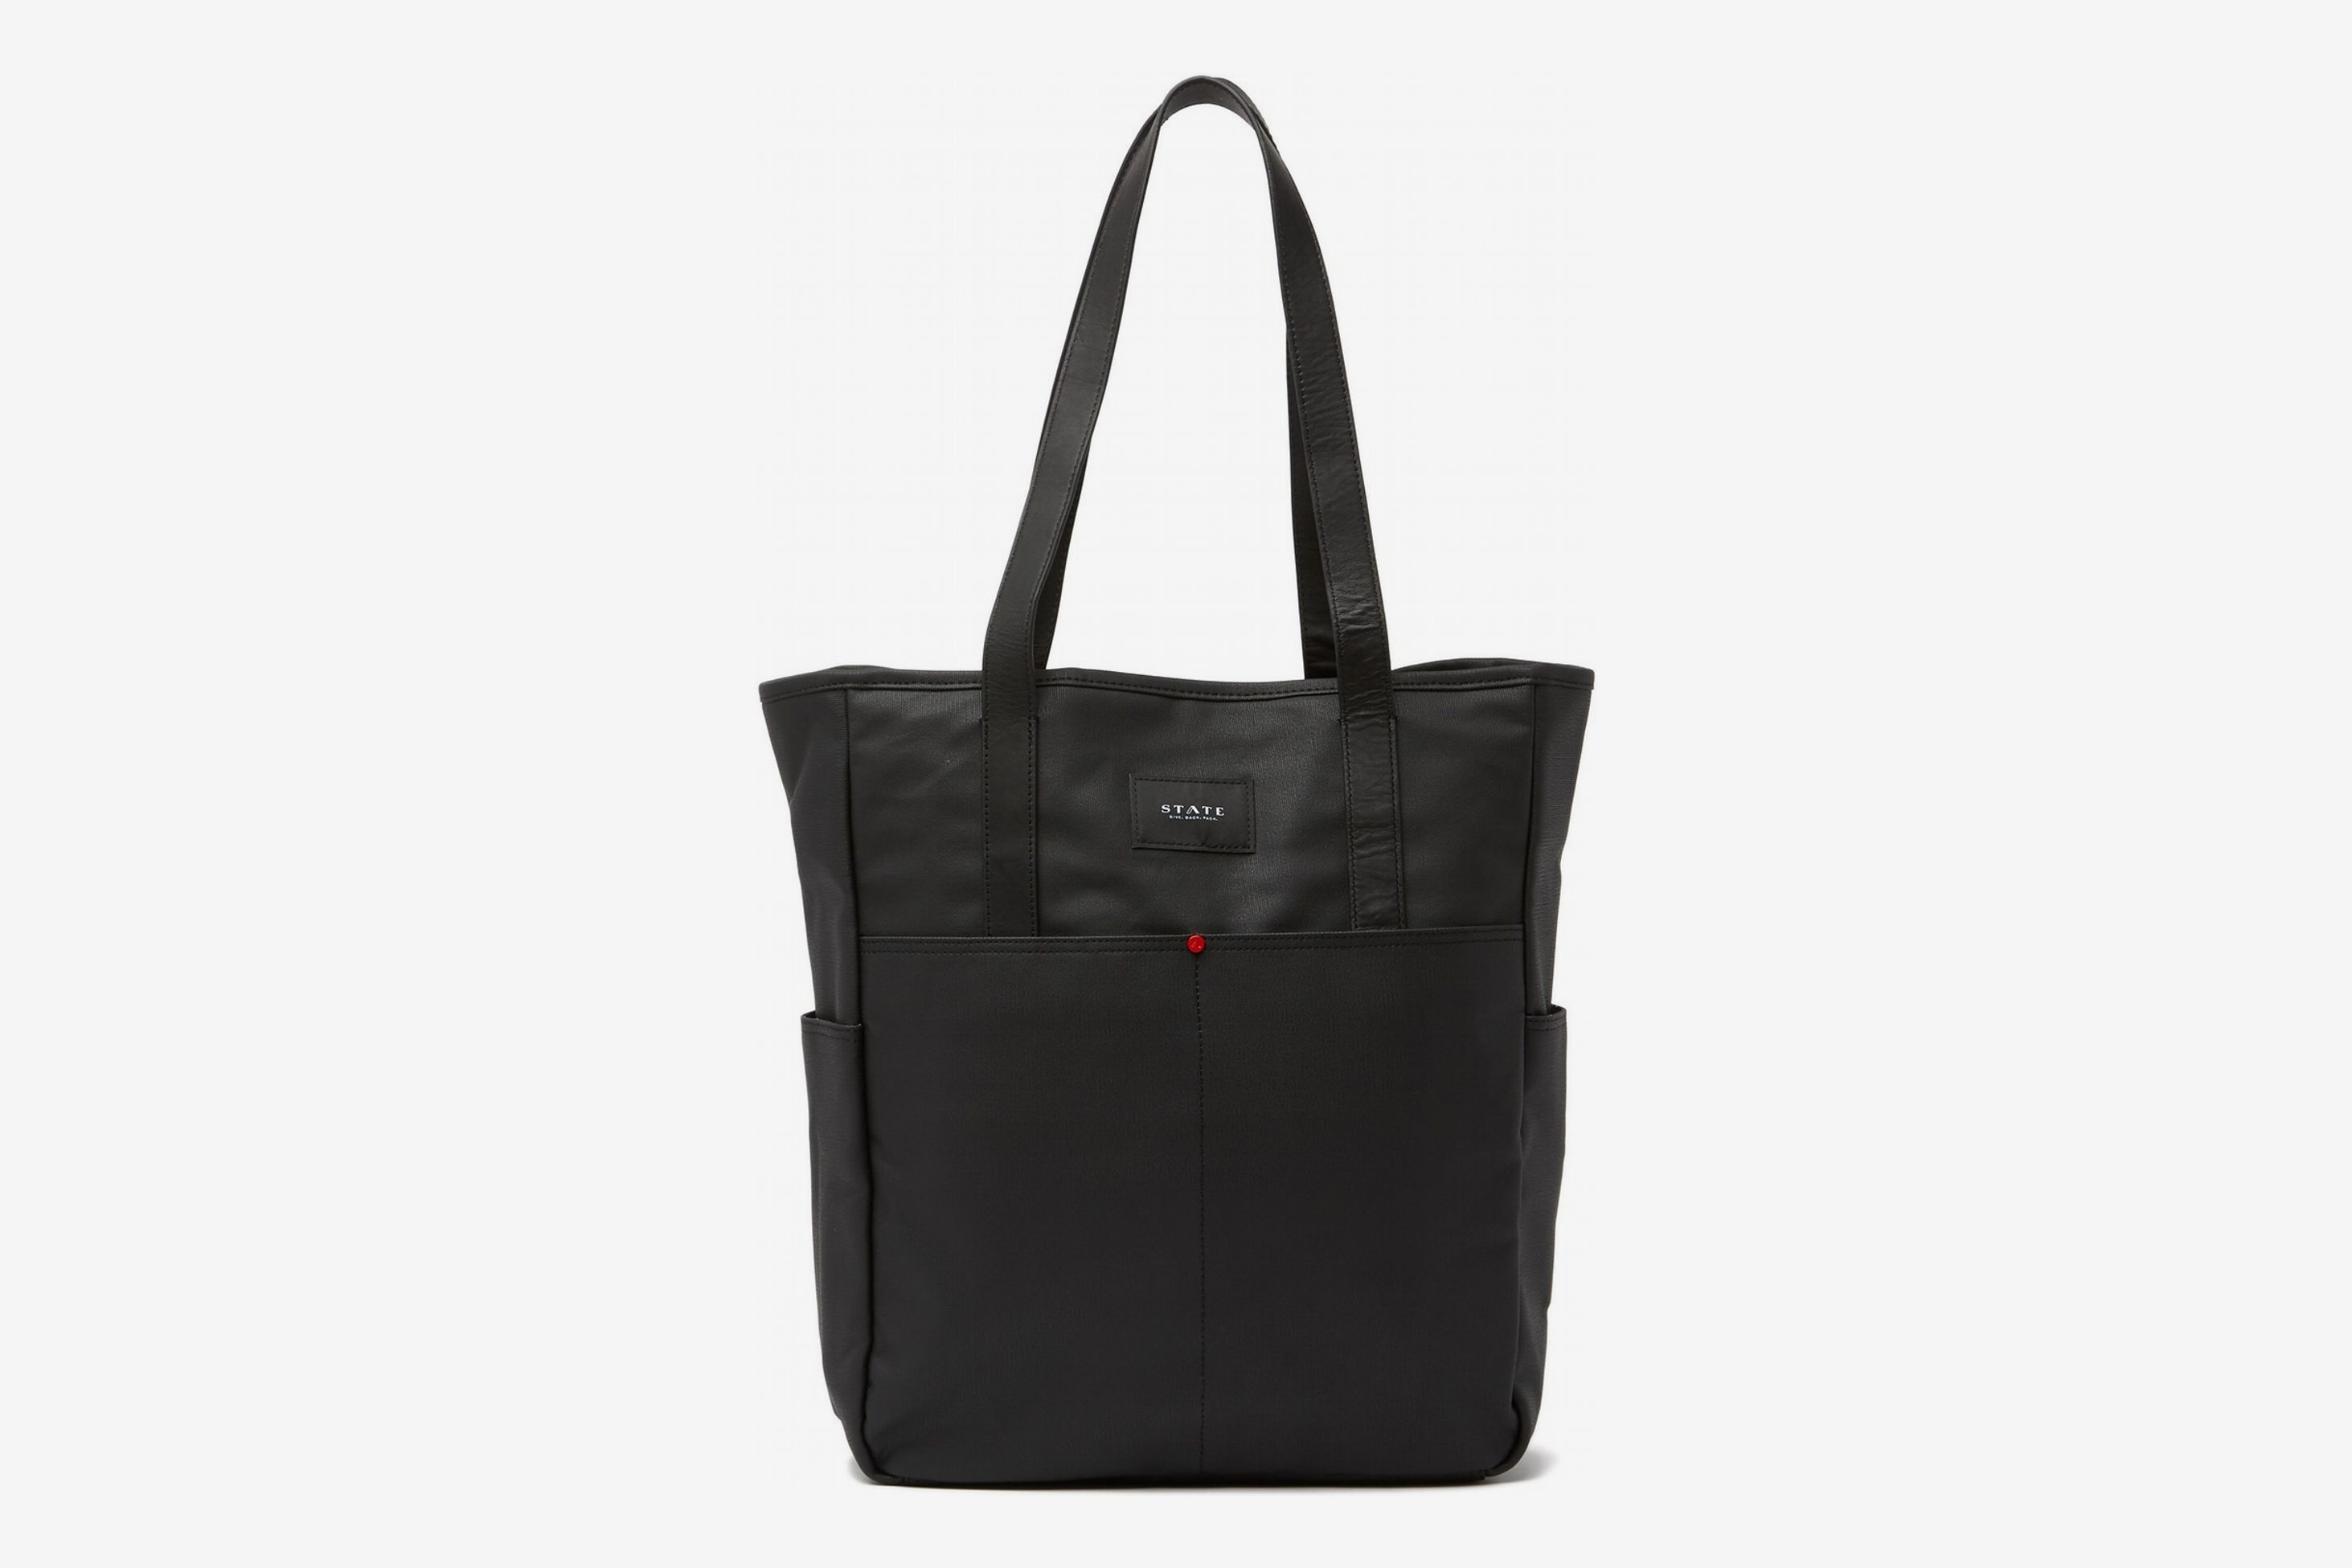 State Bags Fenimore Tote Bag